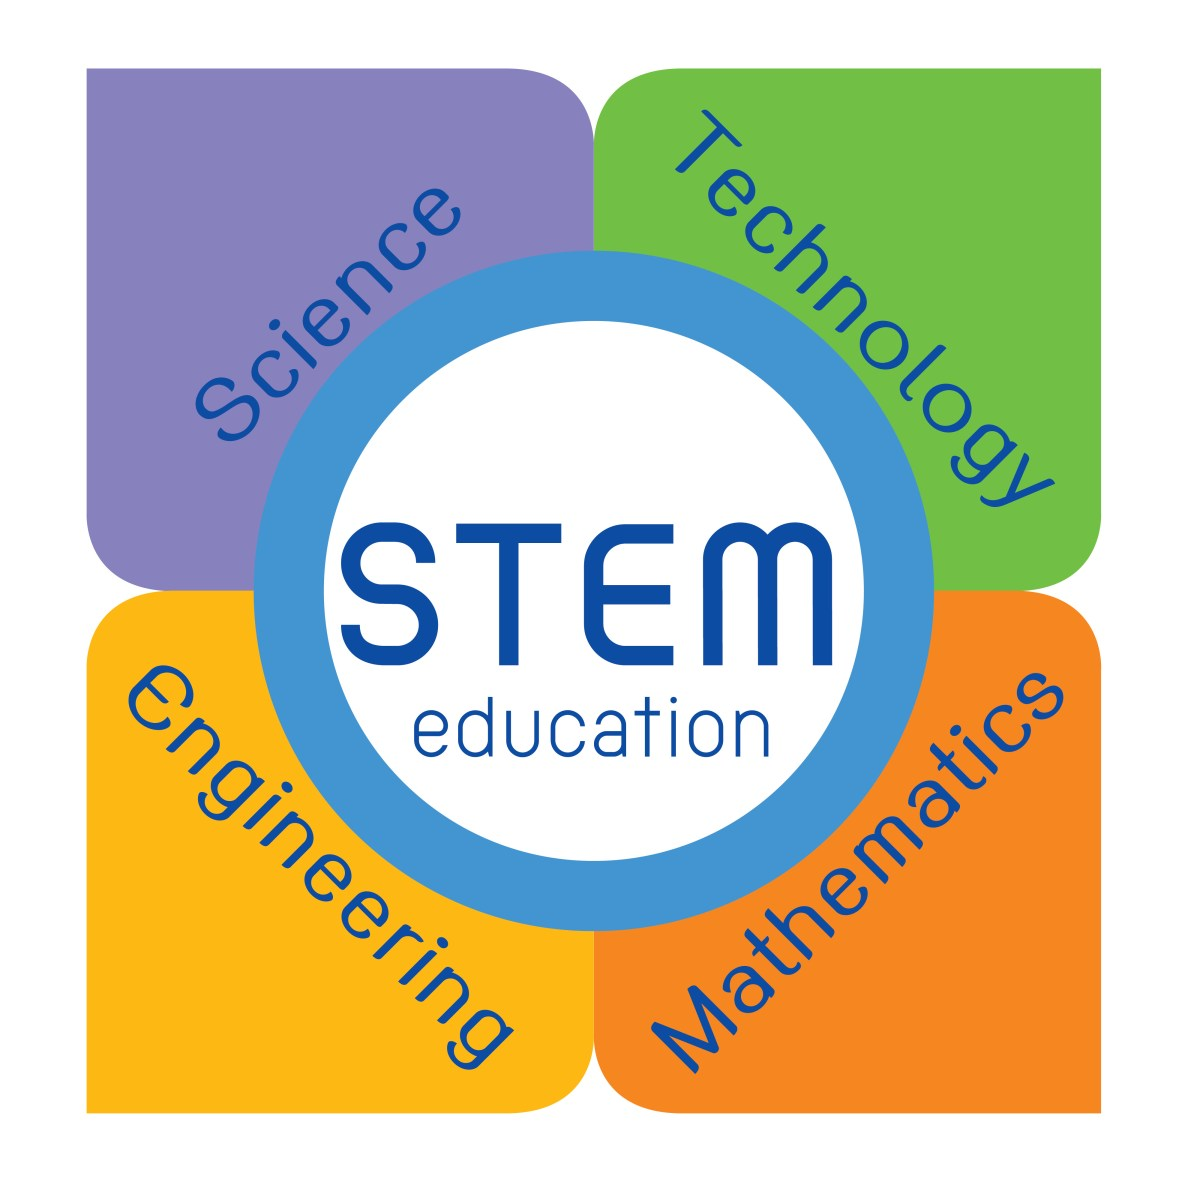 Stem Education: She-conomy » The Gender Gap In STEM Careers Exists, But Is